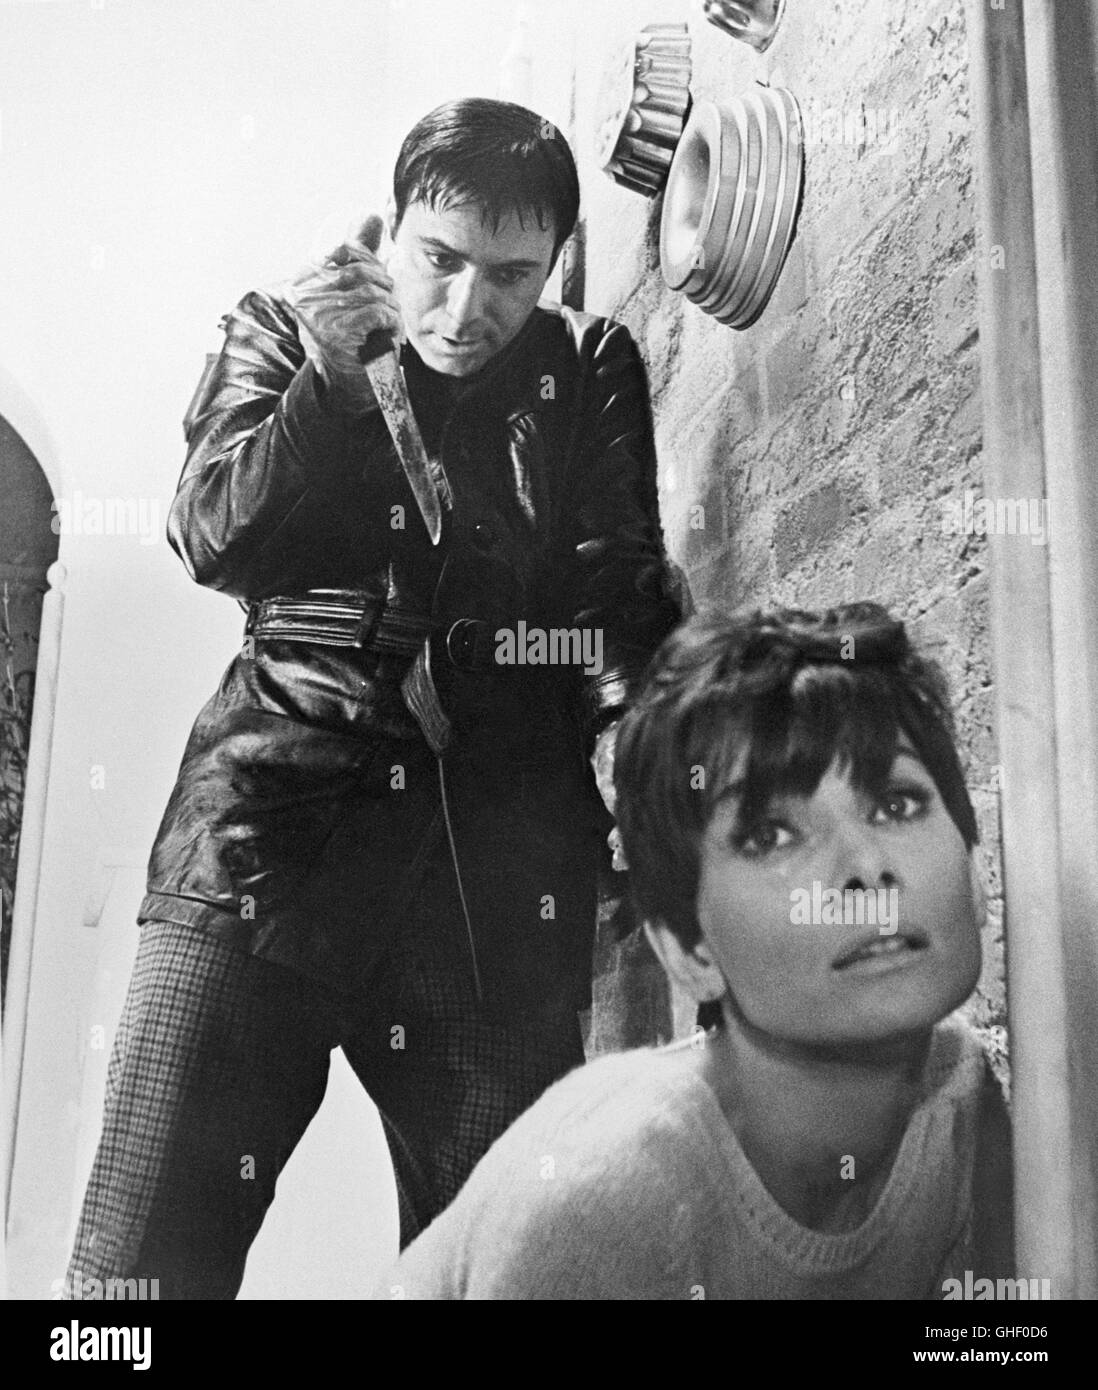 WAIT UNTIL DARK USA 1967 Terence Young ALAN ARKIN as Harry Roat, AUDREY HEPBURN as blind Susy Hendrix Regie: Terence - Stock Image